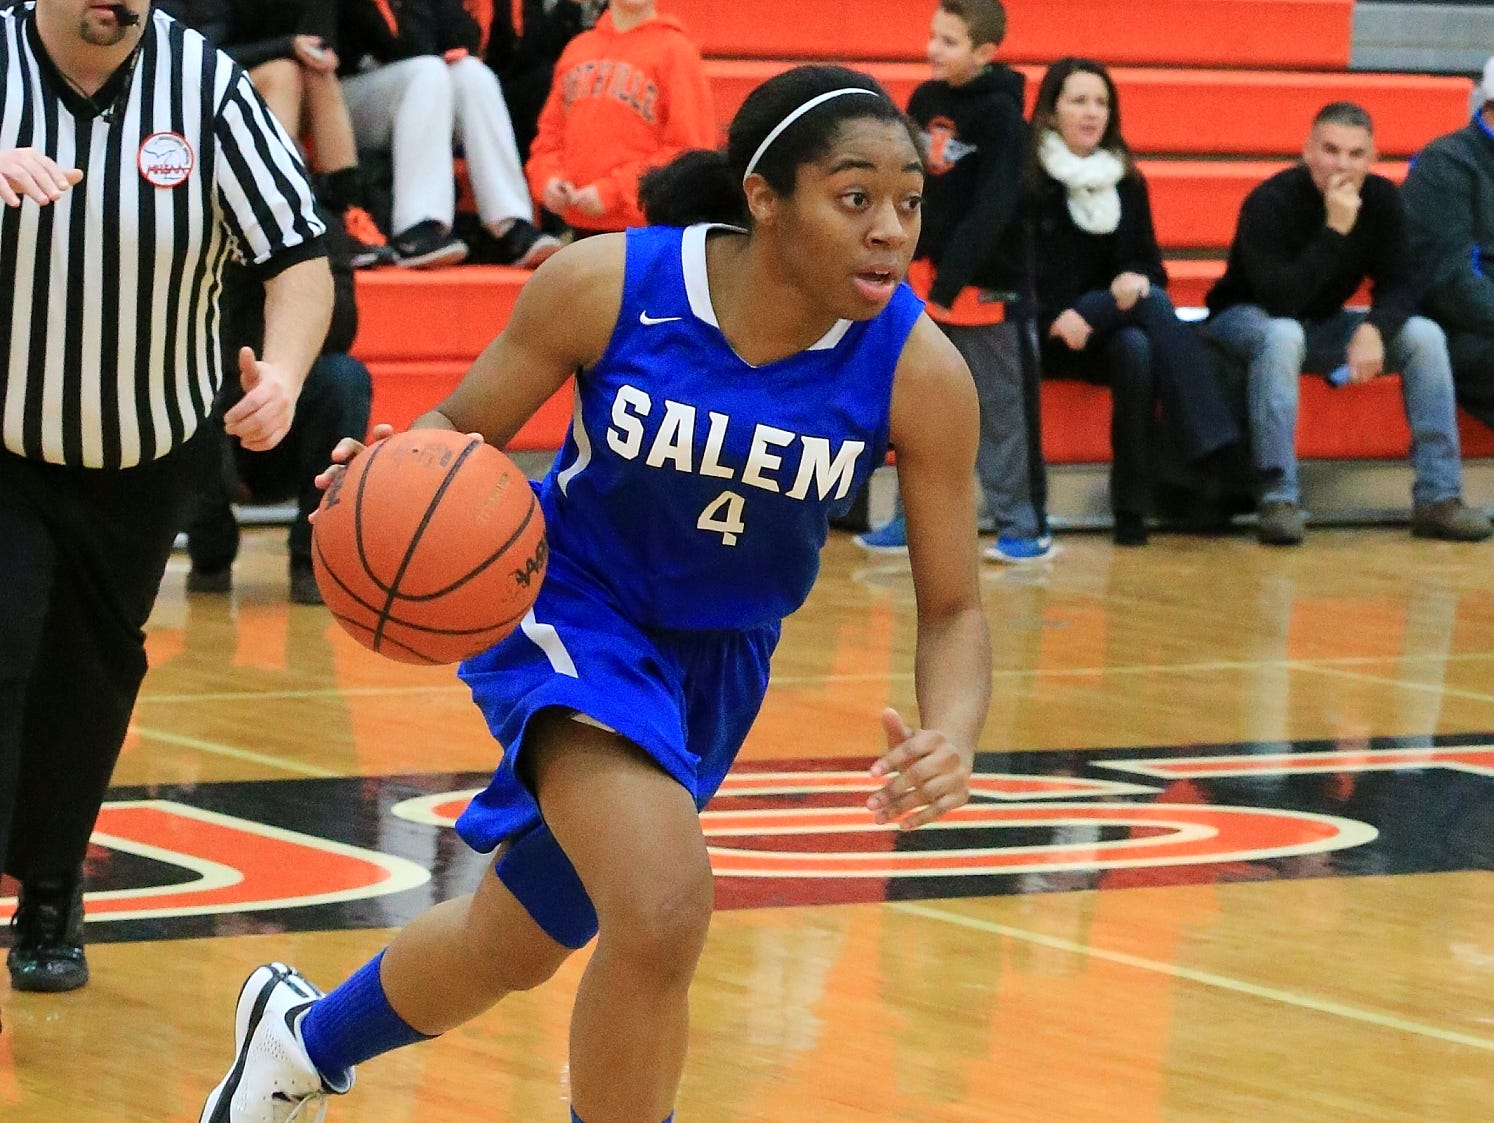 Bringing the ball up court during a recent game is Salem senior guard Jamyra Wilson.